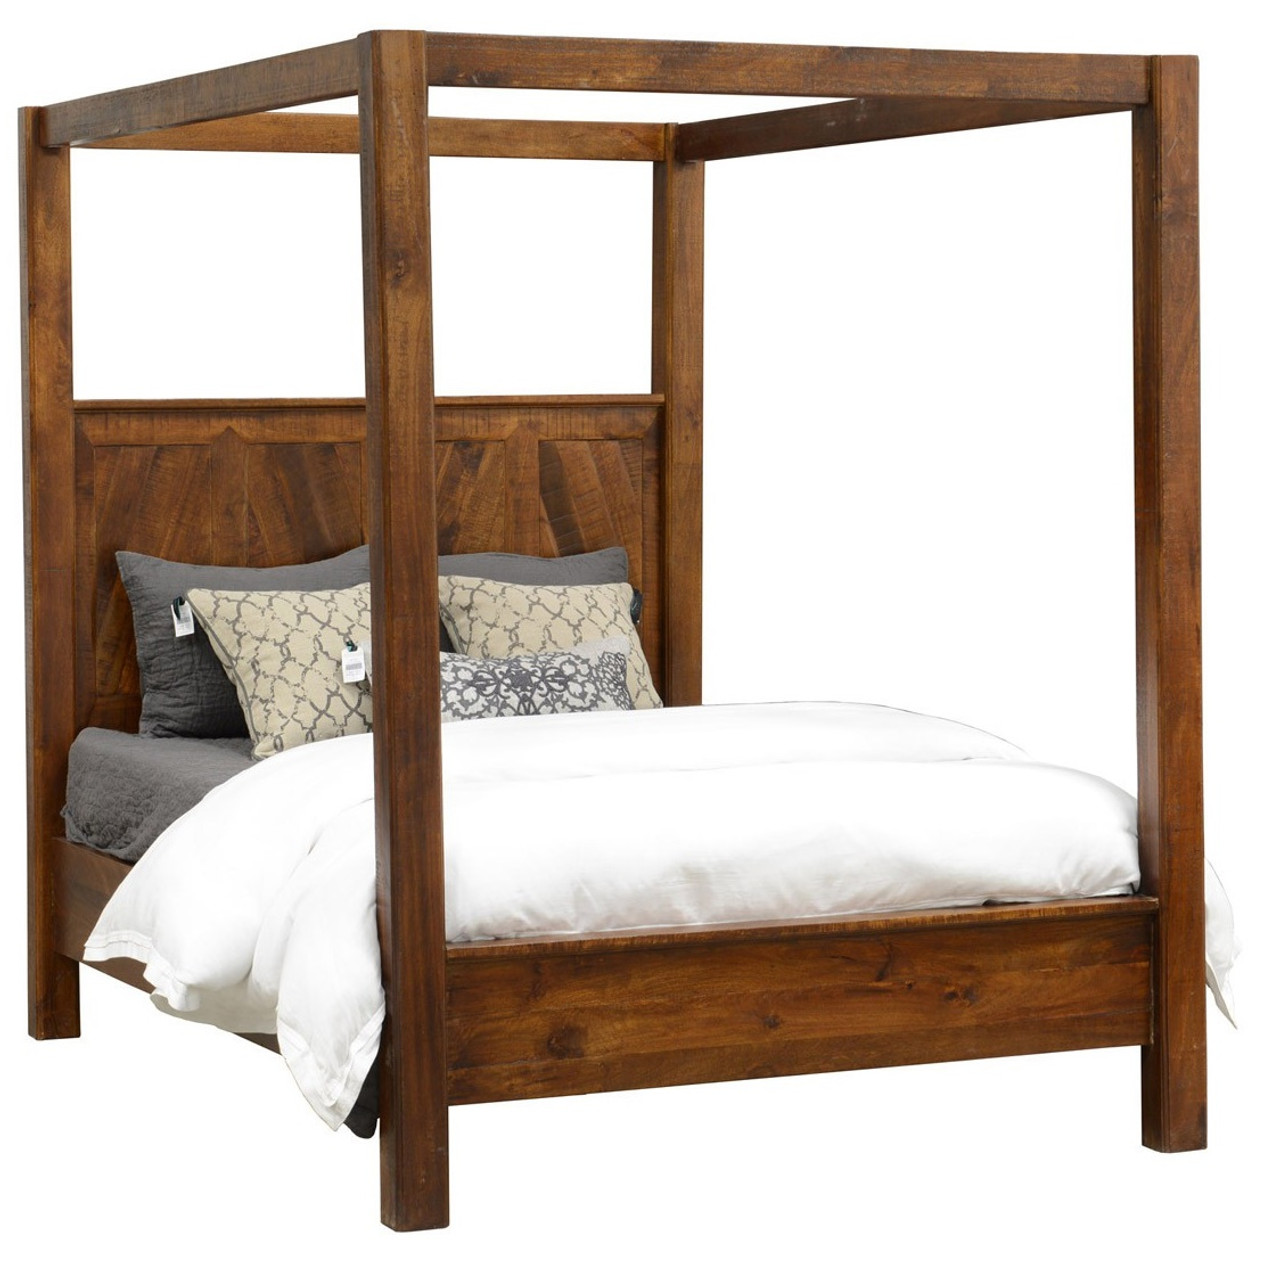 Top Kosas California King Wood Canopy Bed | Zin Home VM21